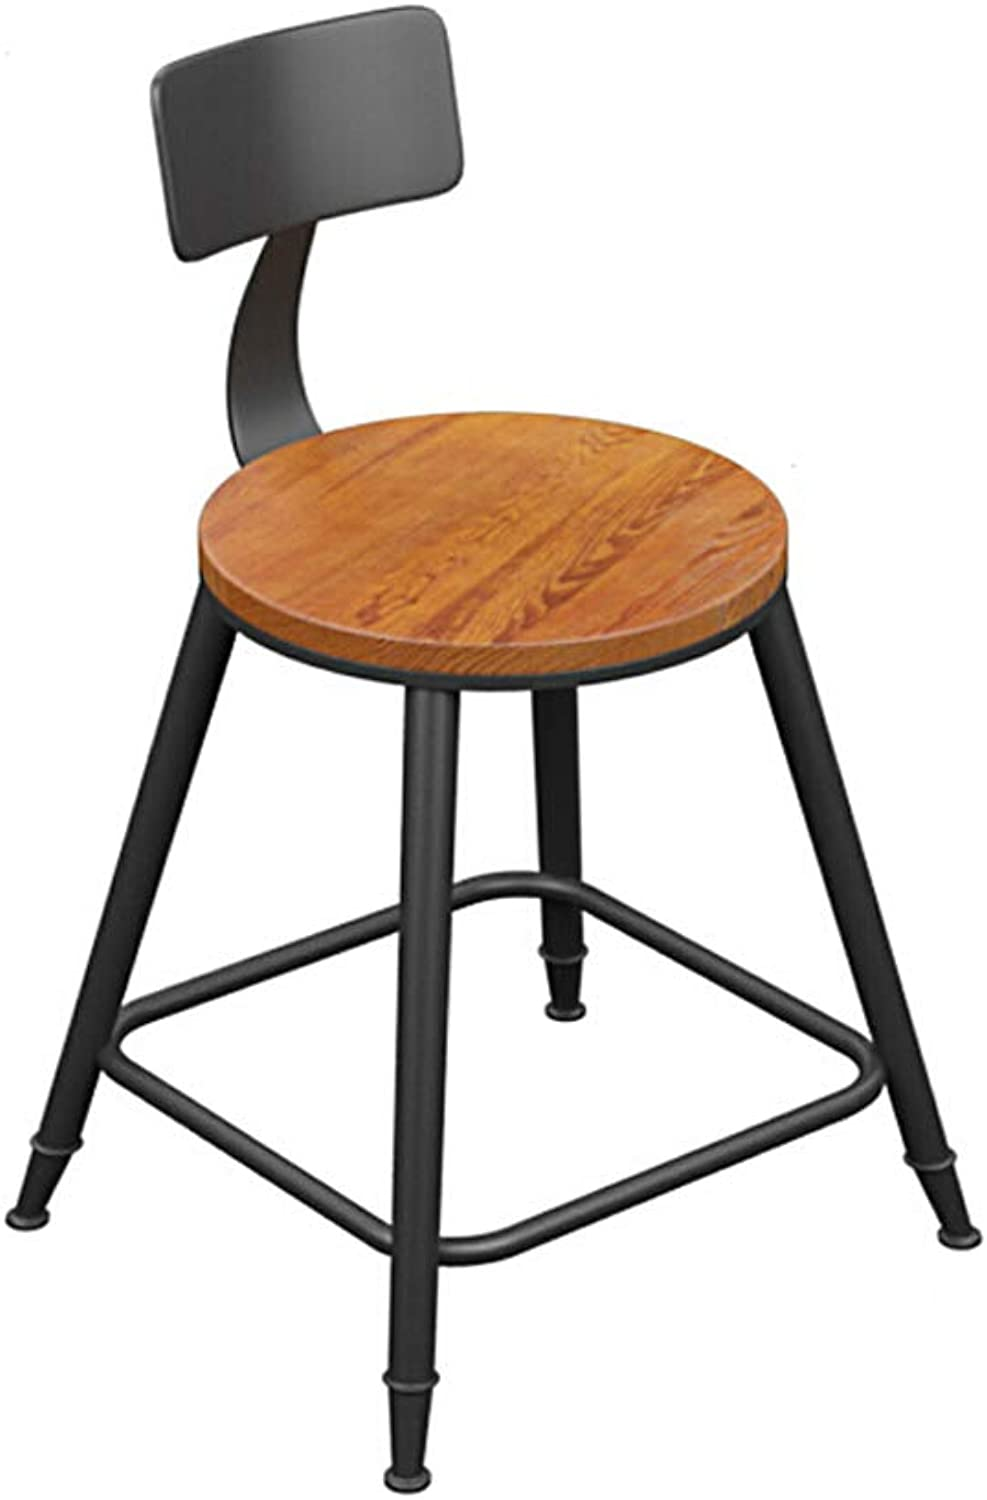 Bar Stool Bar Stool Modern Minimalist European High Chair Solid Wood Wrought Iron Table and Chairs Bar Stool with Backrest Two Types (color   Wood, Size   85)